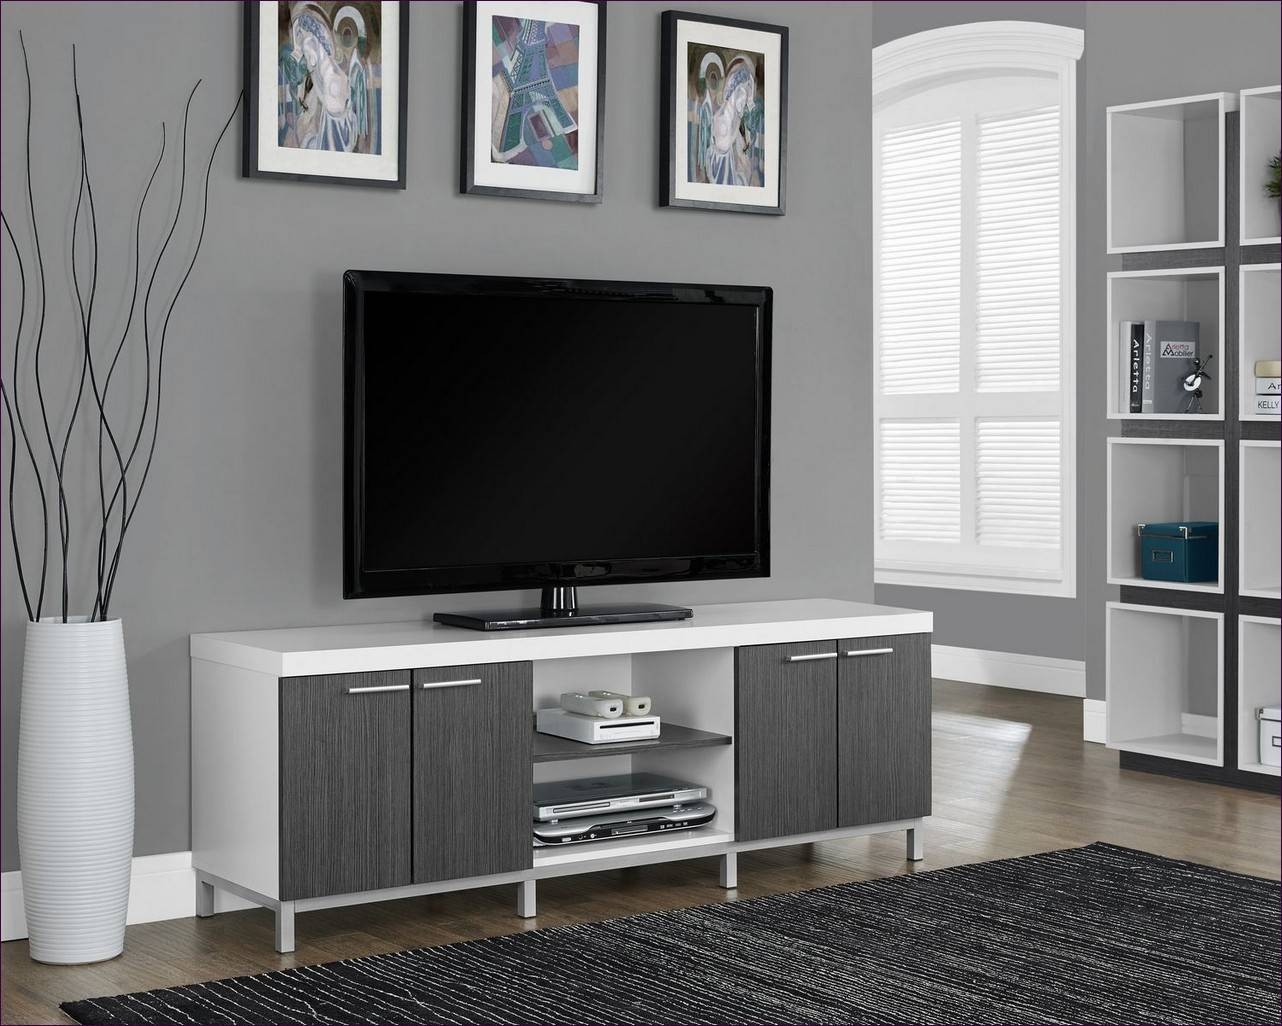 15 photos 24 inch tall tv stands for Tall tv stands for living room